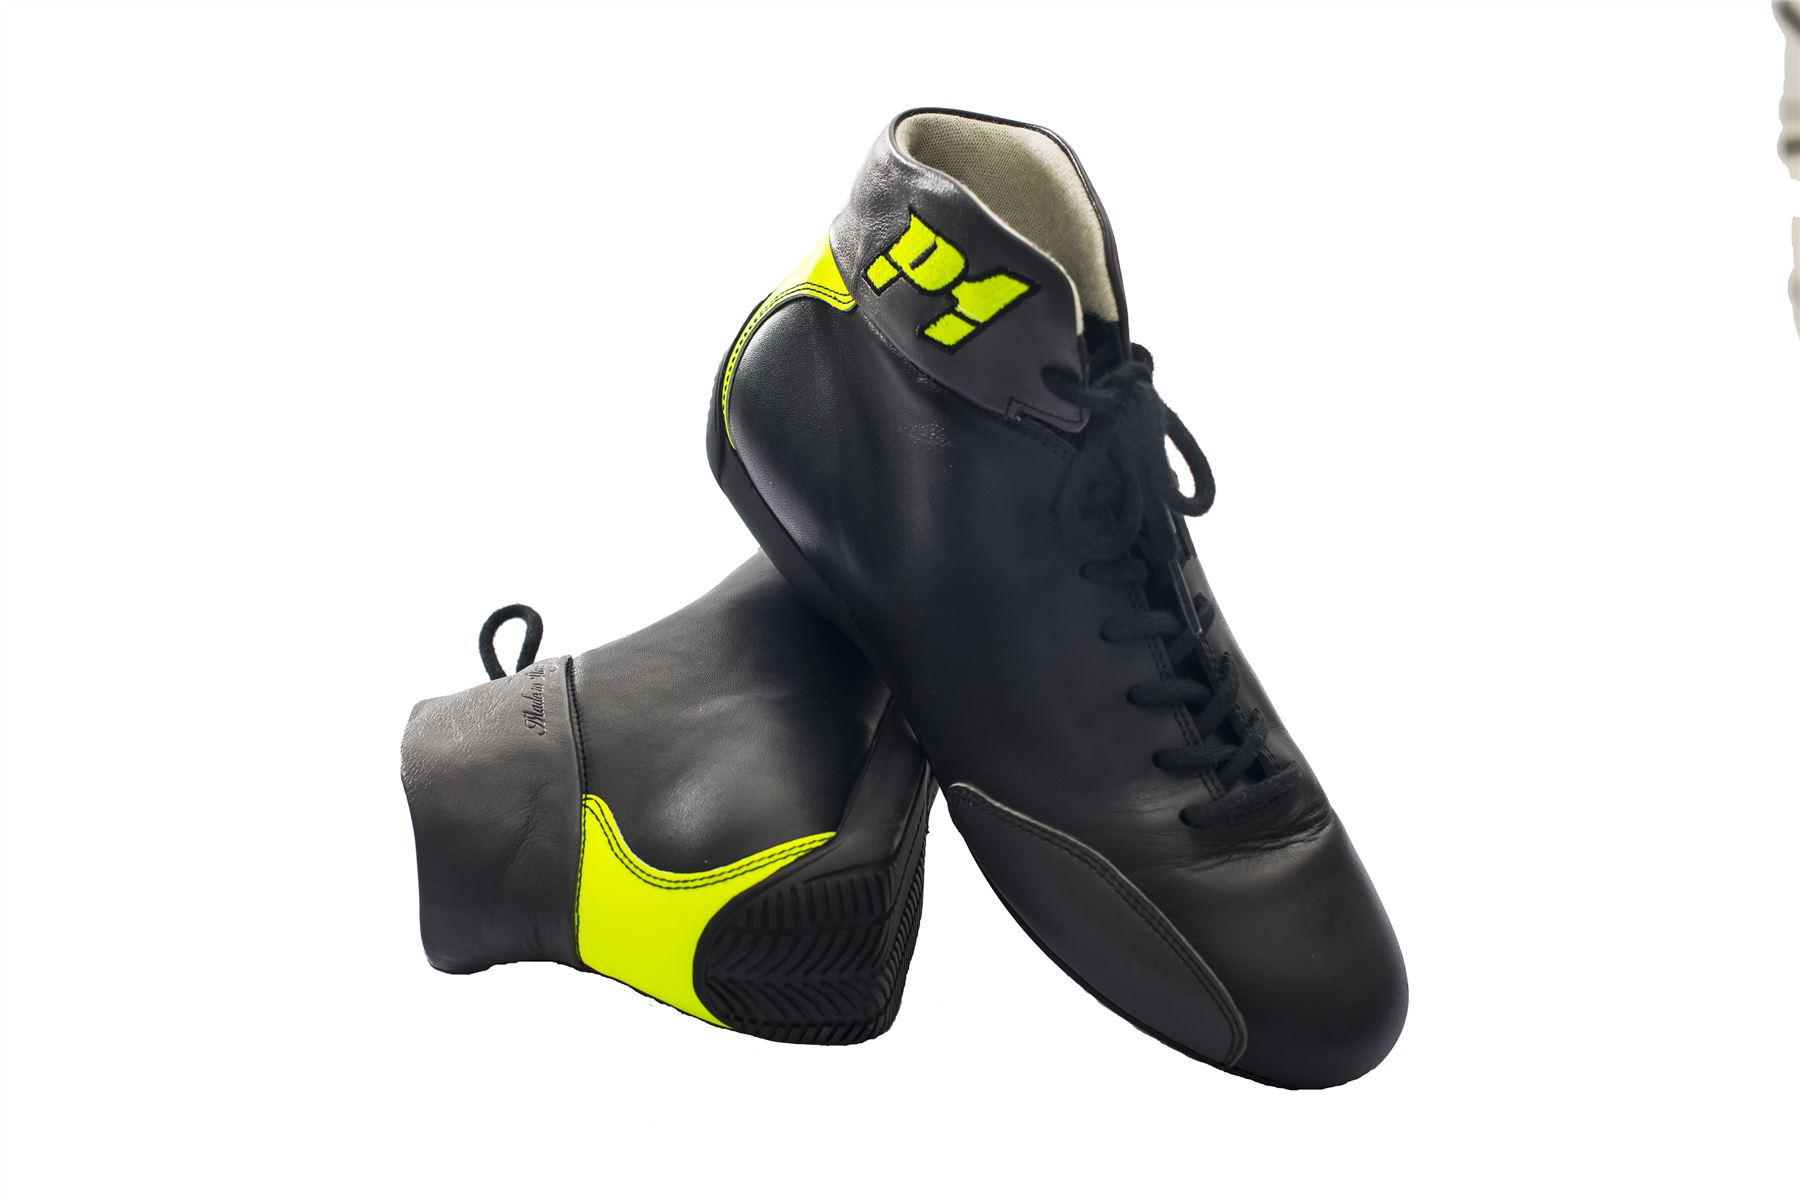 Indexbild 9 - P1-Racewear-Monza-FIA-Approved-Soft-Leather-Race-Rally-Boots-Black-Fluro